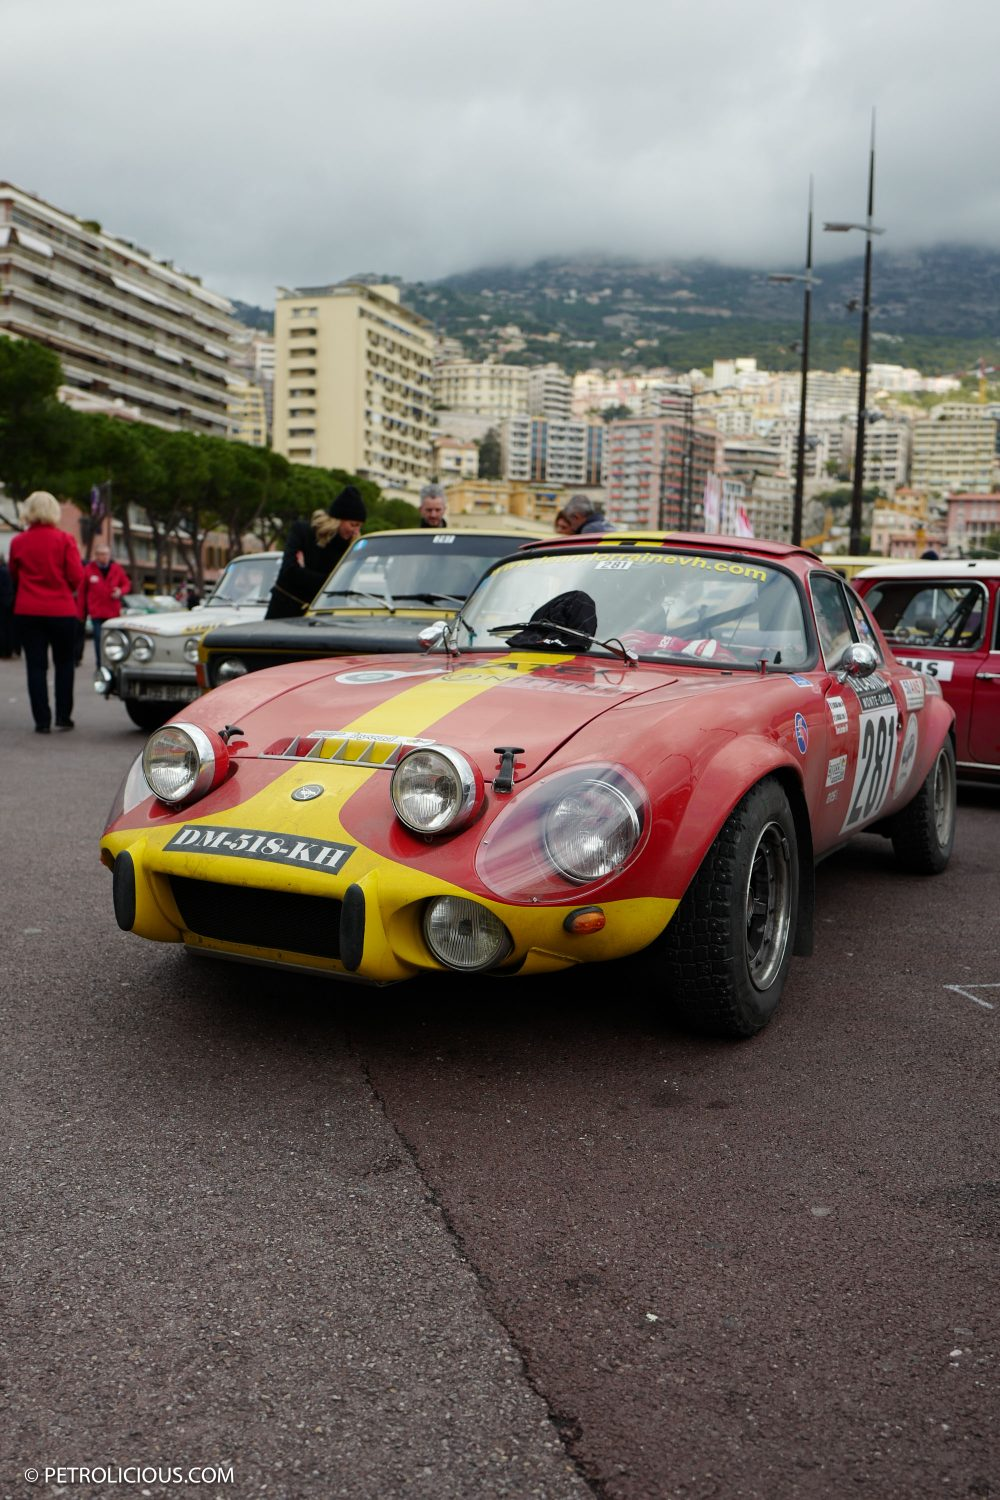 Catching Up With Rally Legend Rauno Aaltonen At The Rallye Monte ...